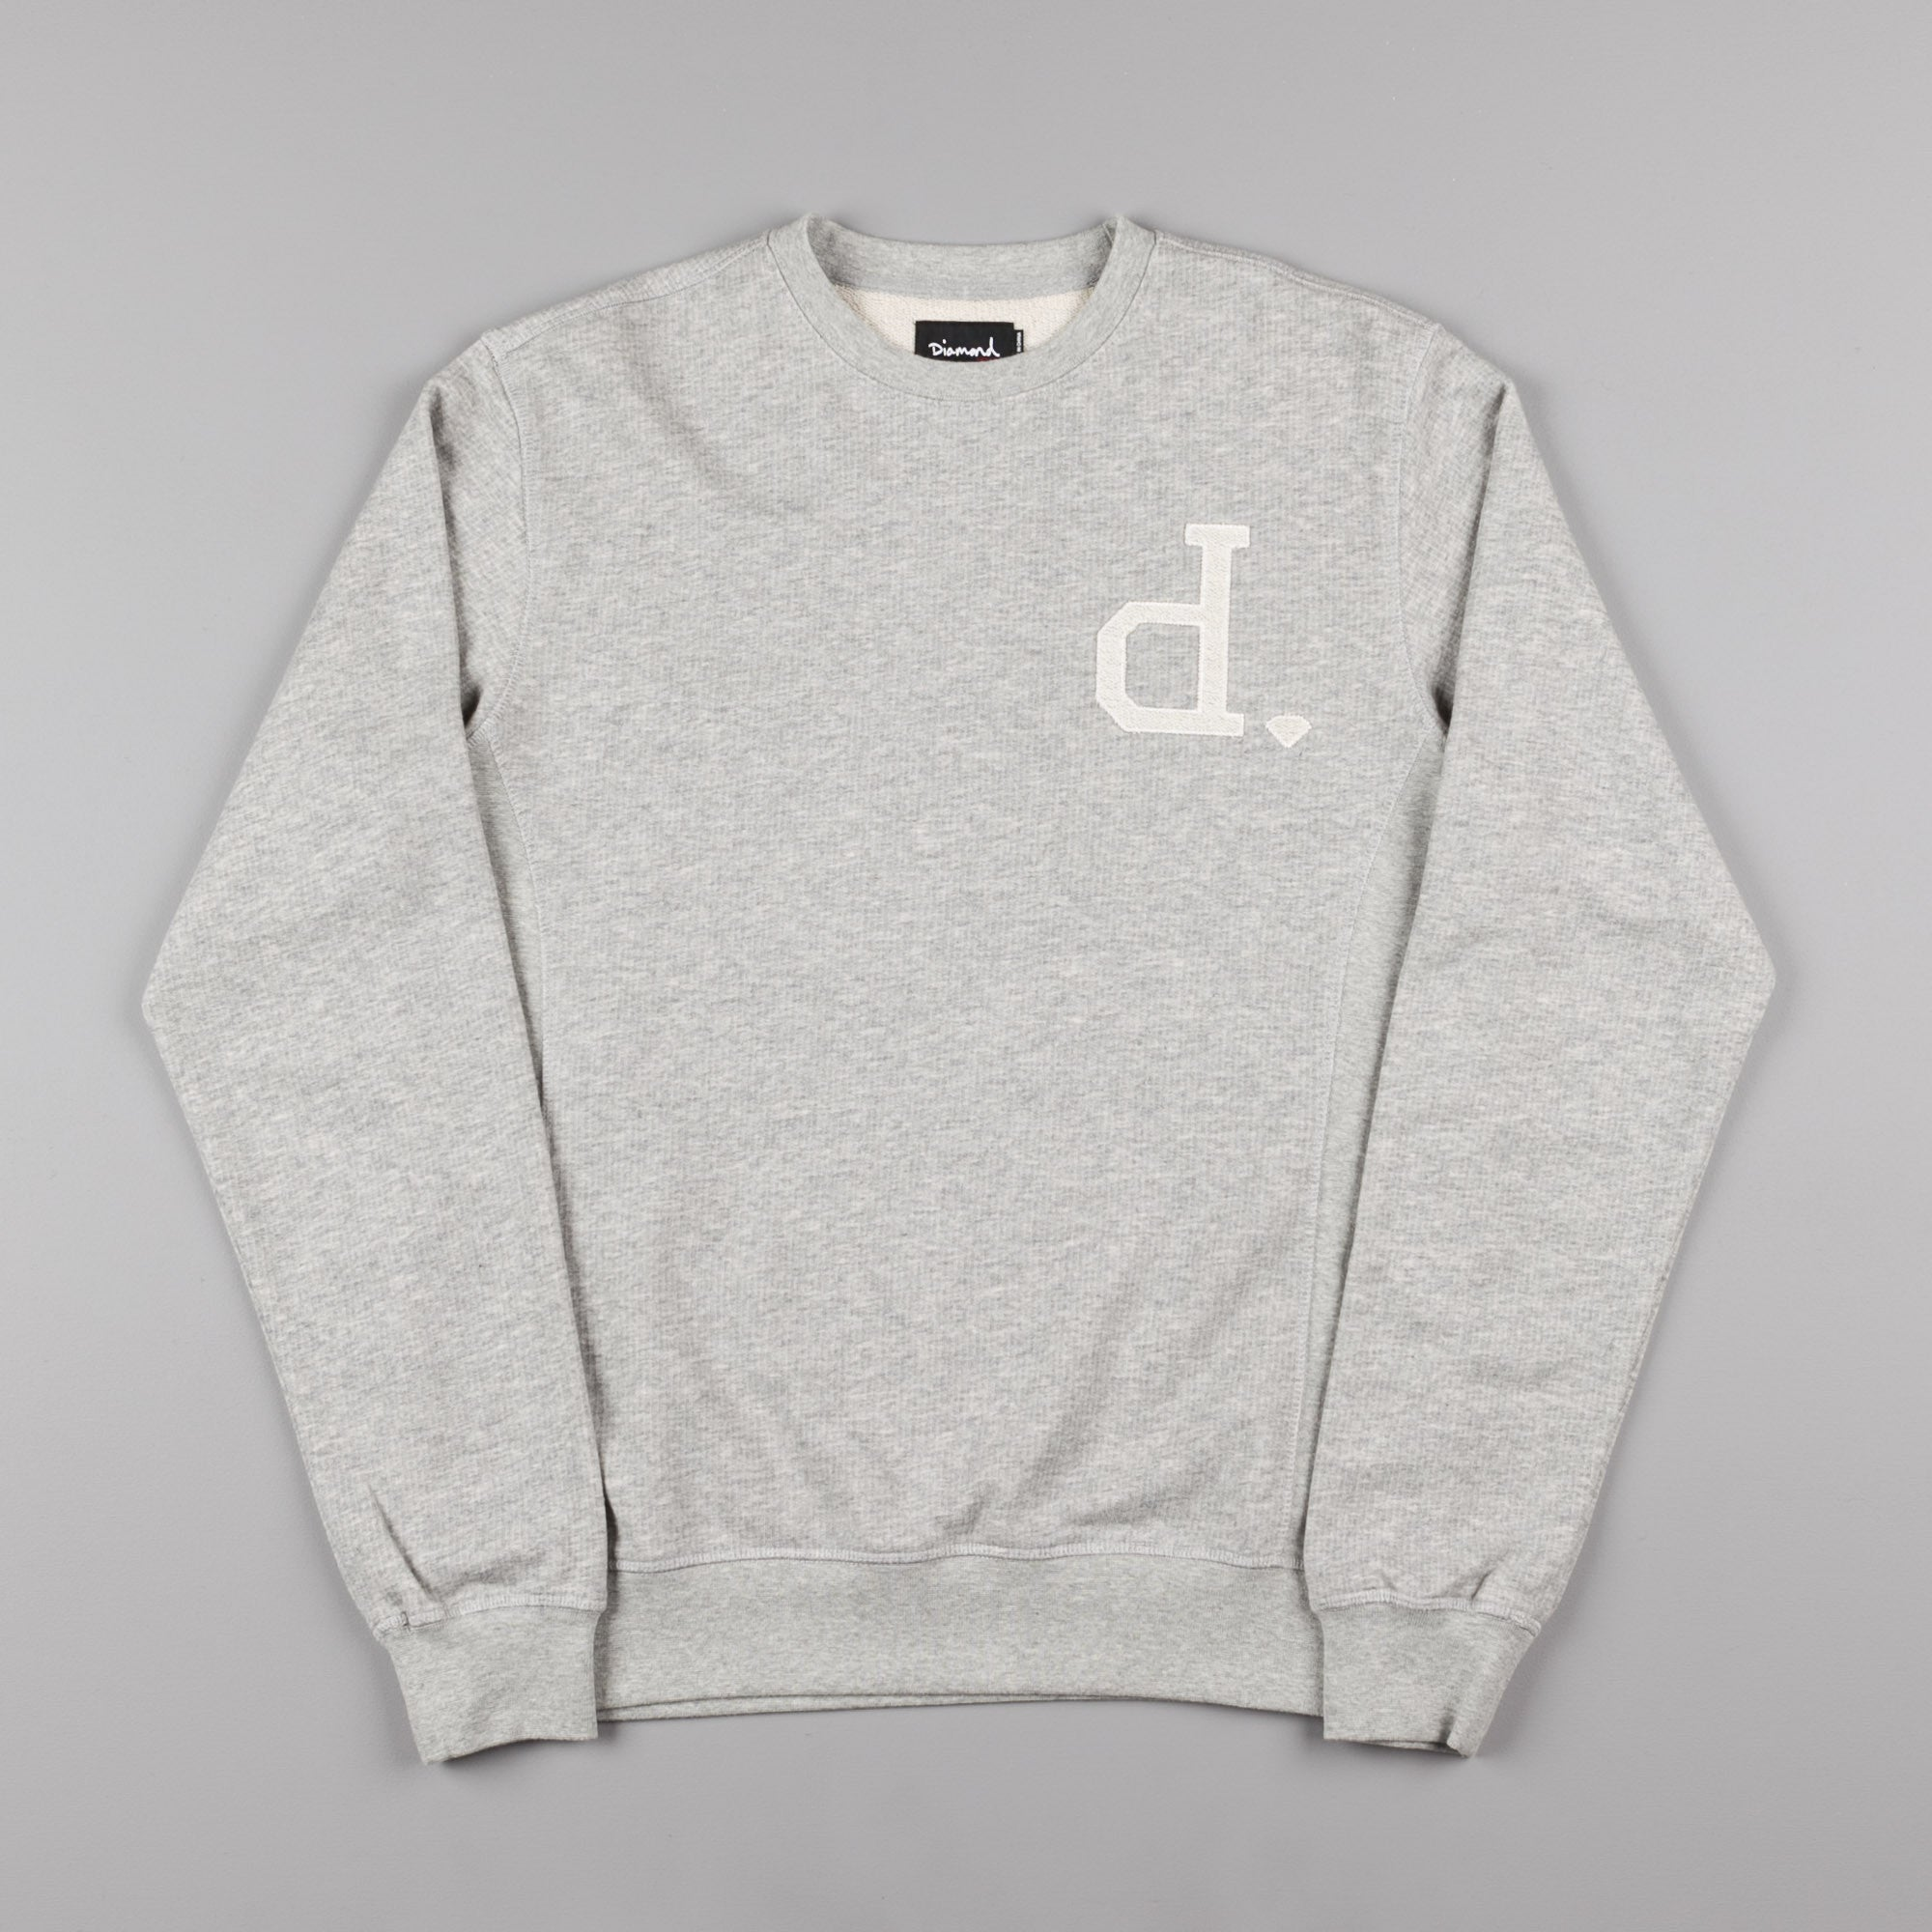 Diamond Un-Polo Crewneck Sweatshirt - Heather Grey